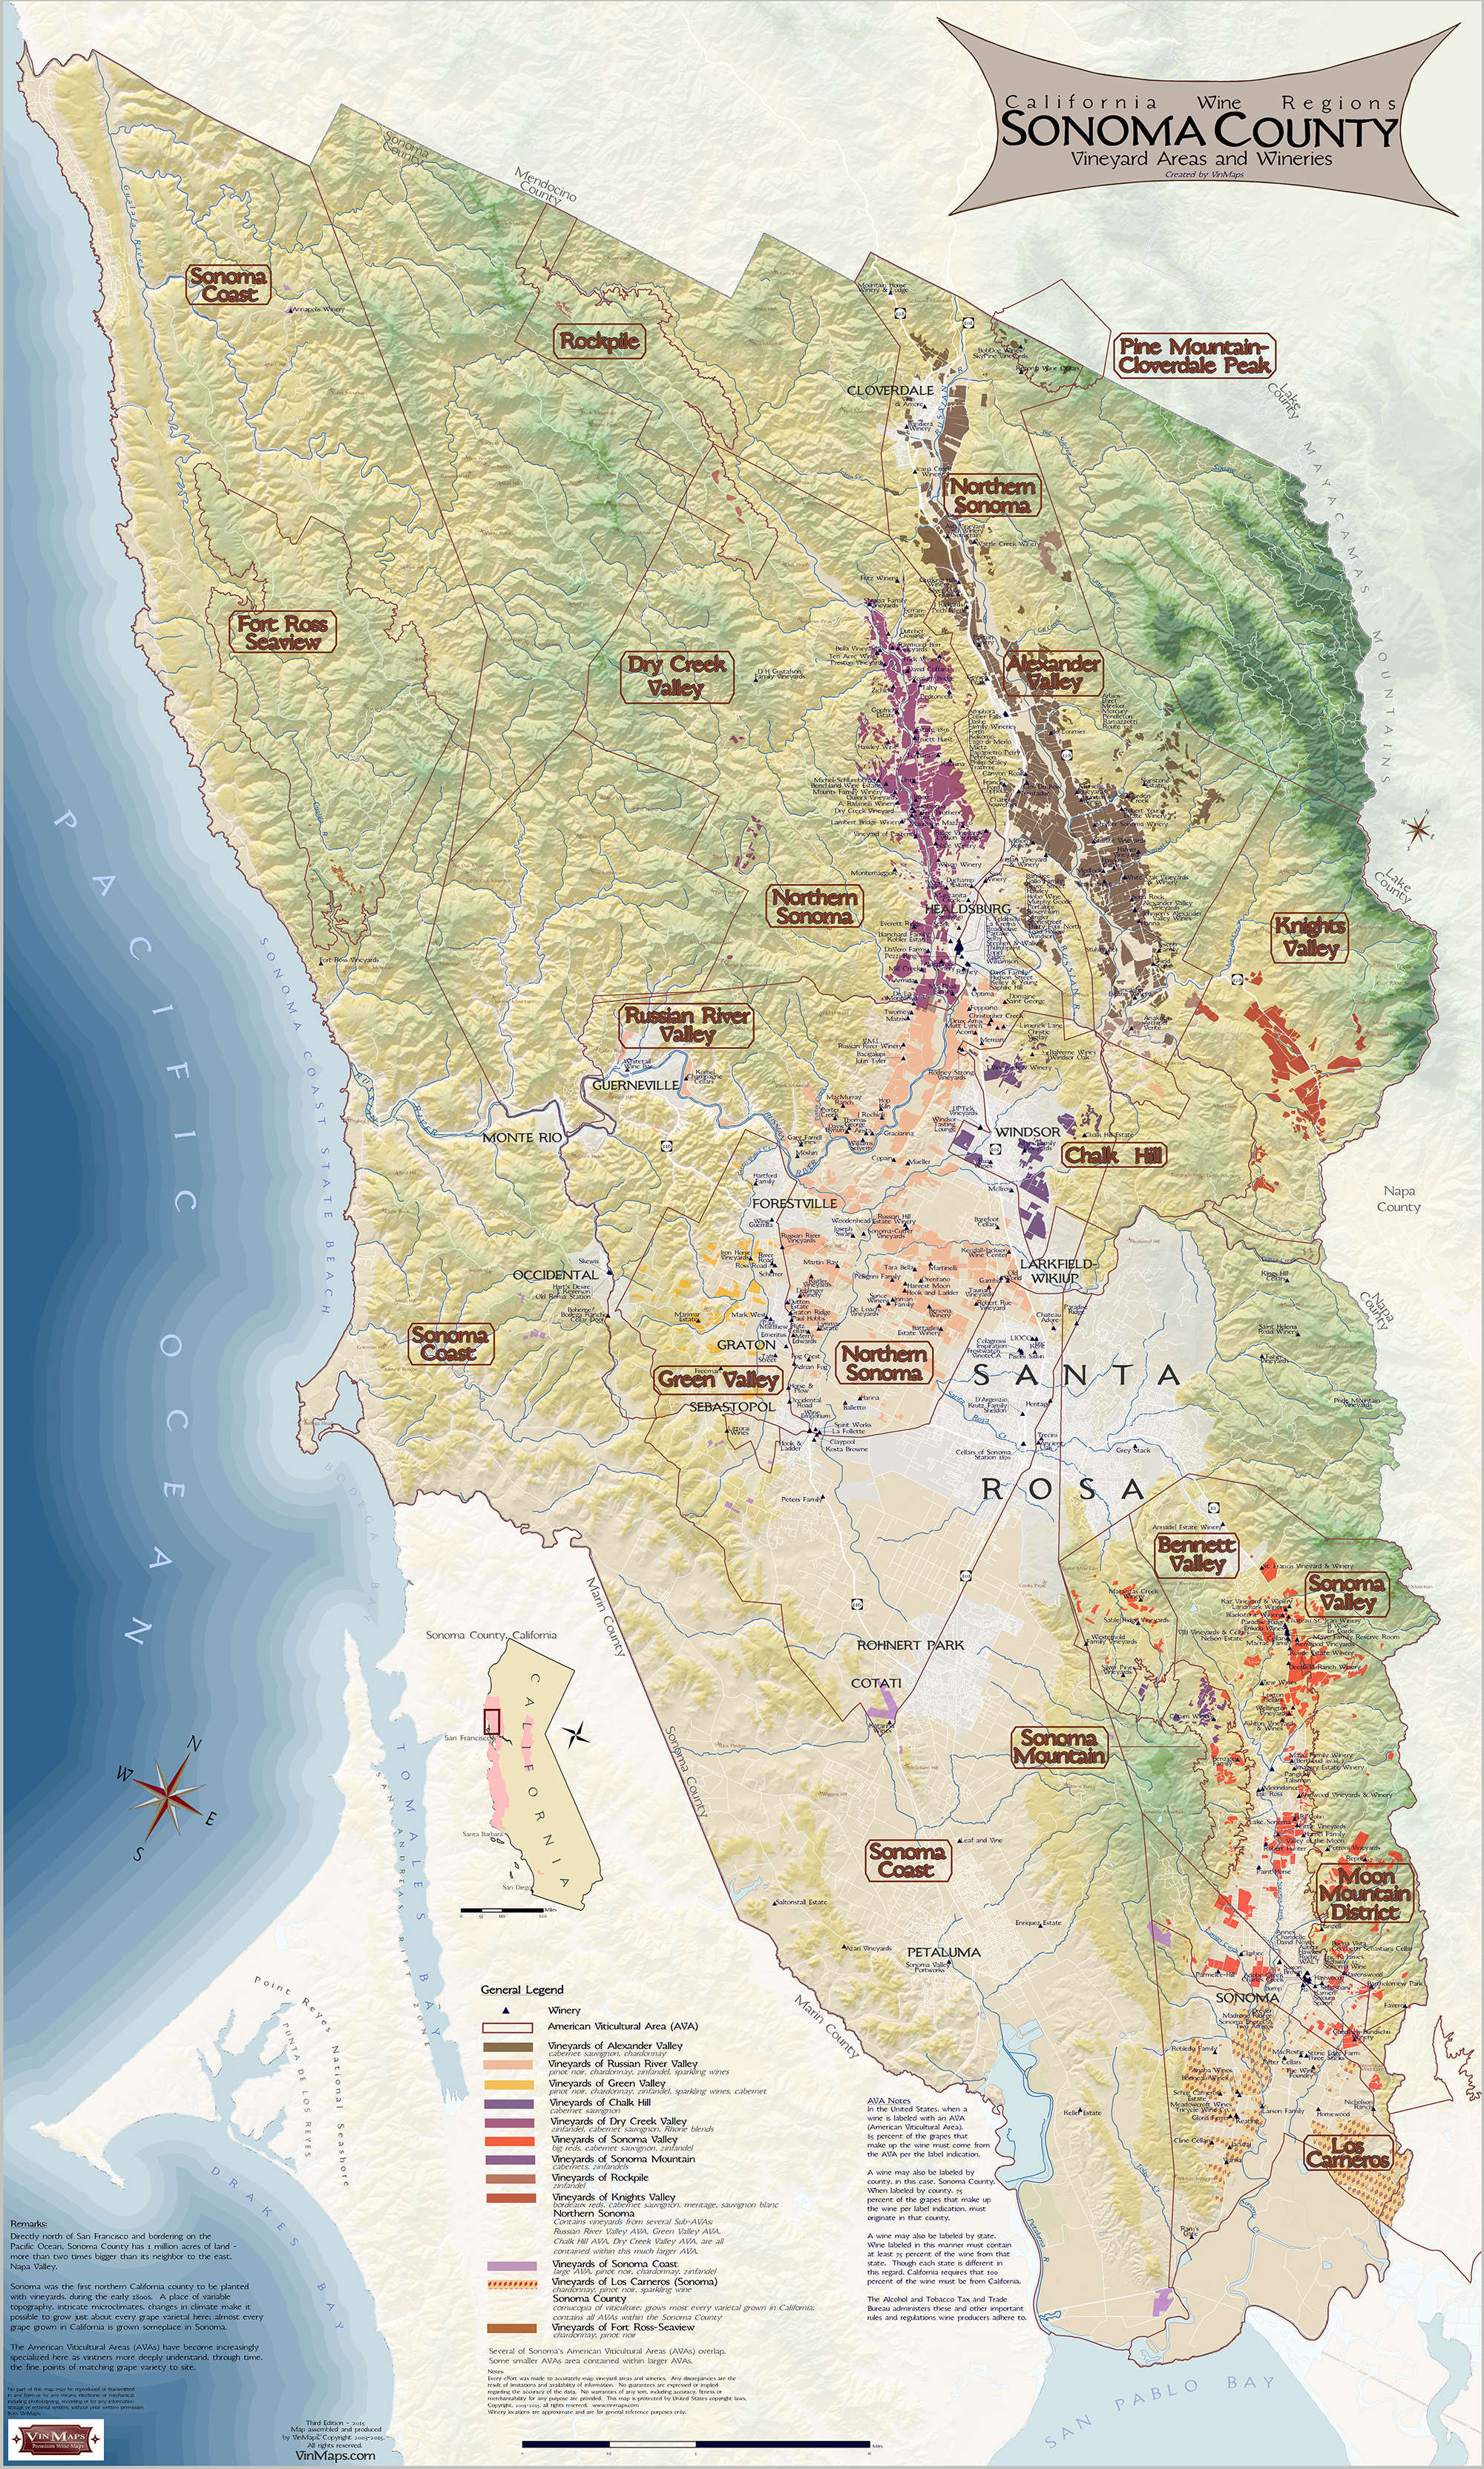 California wine regions of sonoma county for California wine